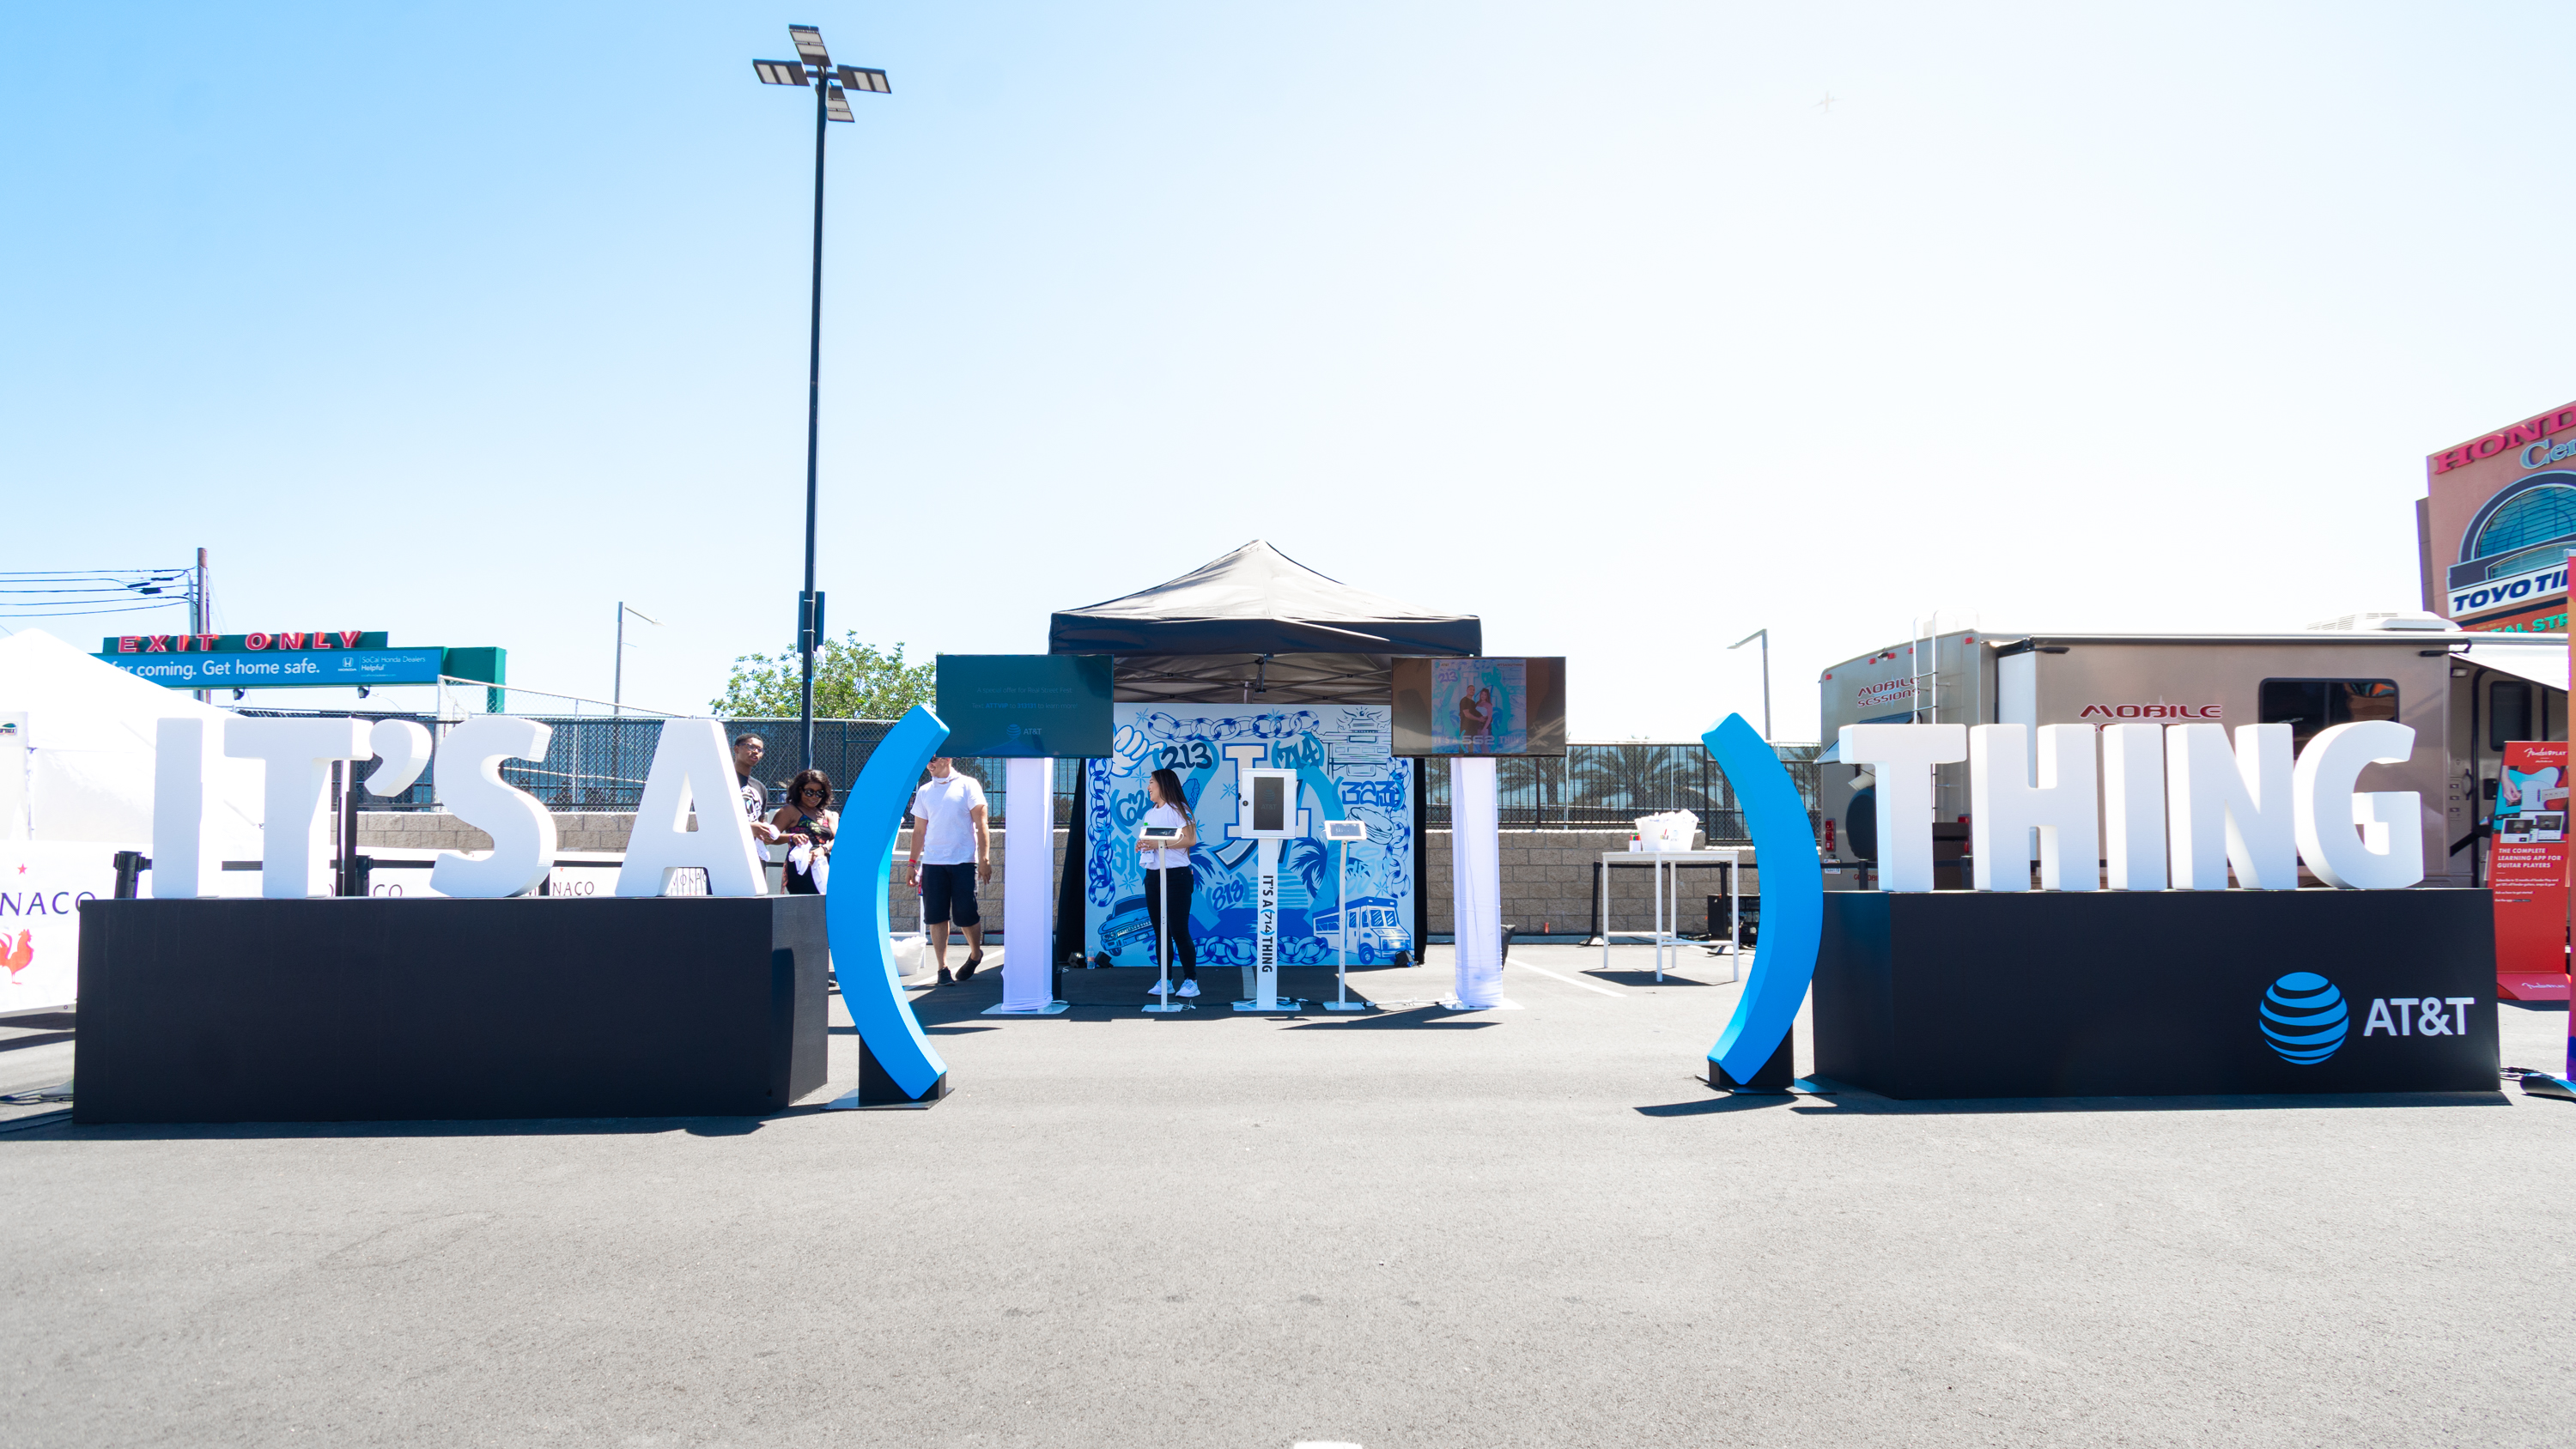 Event AT&T Backdrop Photo Wall